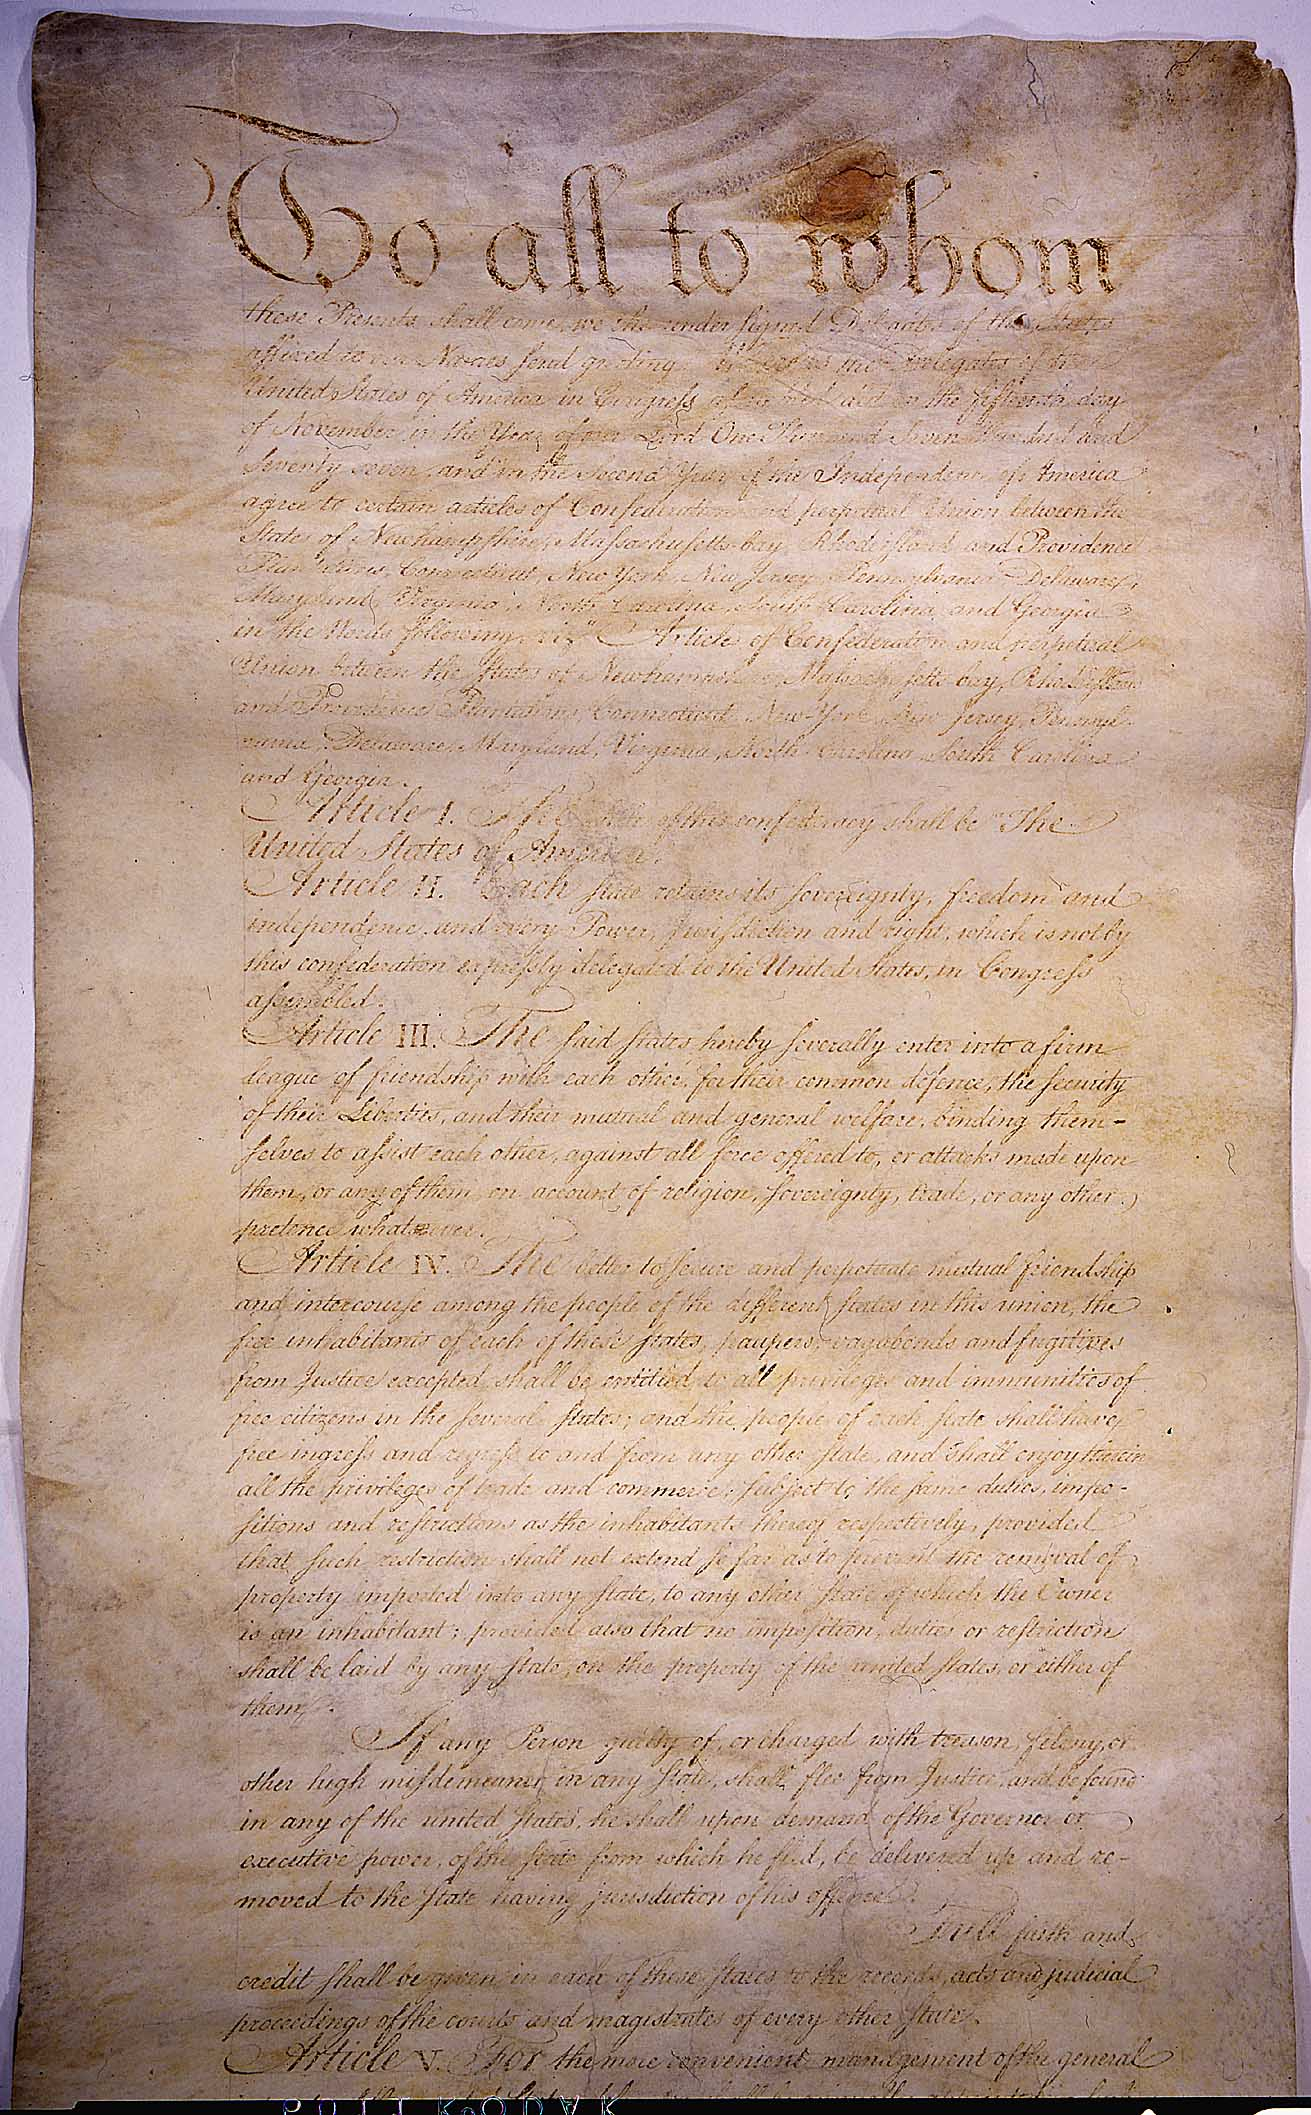 the articles of confederation an The articles of confederation, formally named the articles of confederation and perpetual union, was an agreement among all thirteen original states in the united states of america that served as its first constitution.